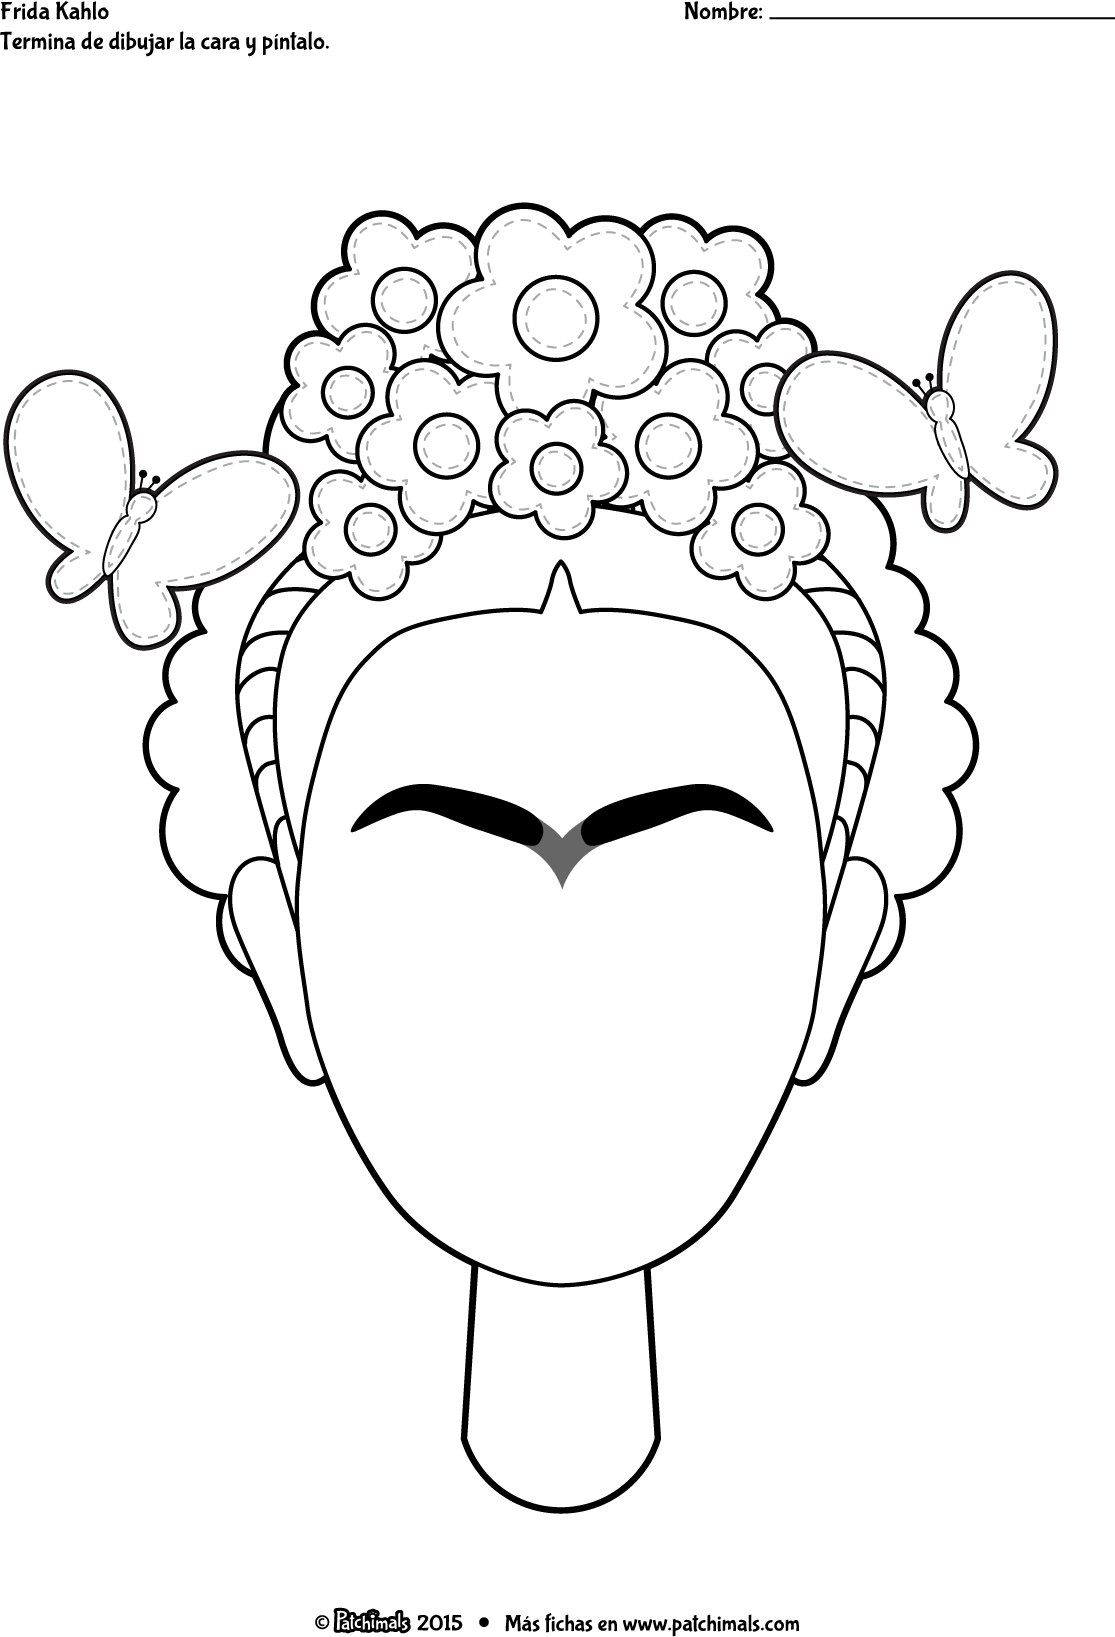 Www Patchimals Com Downloads Coloring Artist Frida Khalo Color Frida Esp Png Cute Art Projects Embroidery Art Art Projects